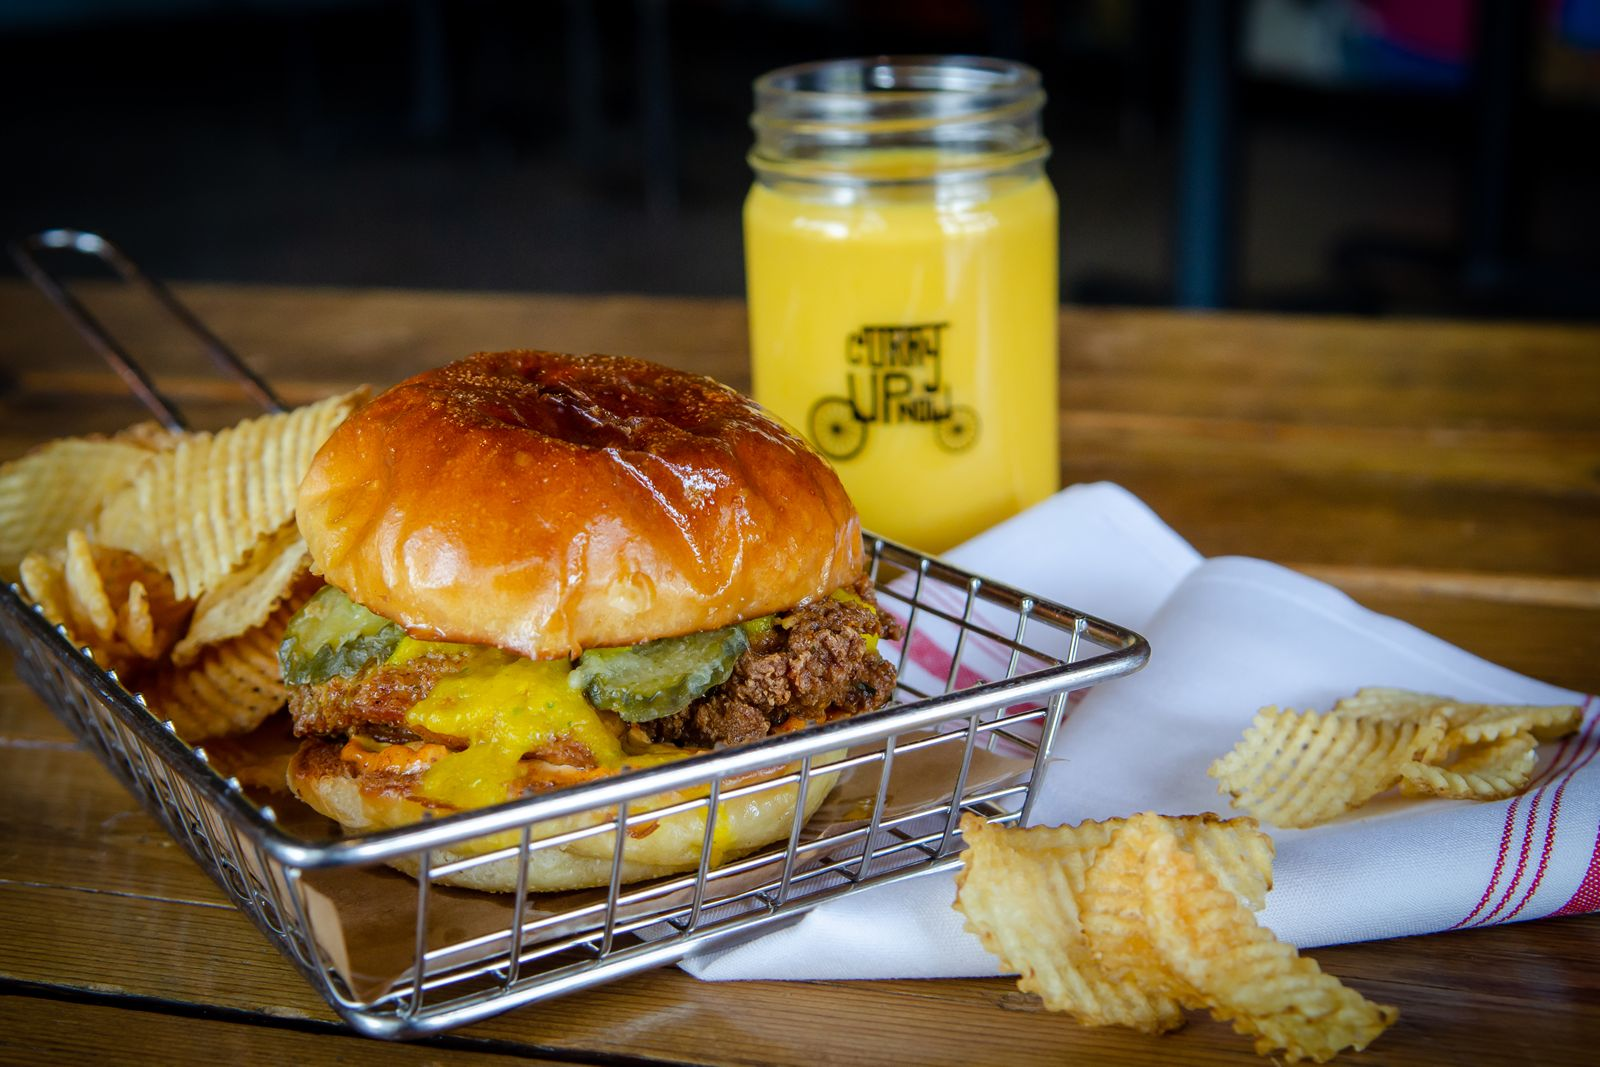 Innovative Indian fast casual concept, Curry Up Now, is entering the fried chicken game with the soft launch of its newest menu item, the Tandoori Fried Chicken Sandwich, at all Bay Area restaurants.